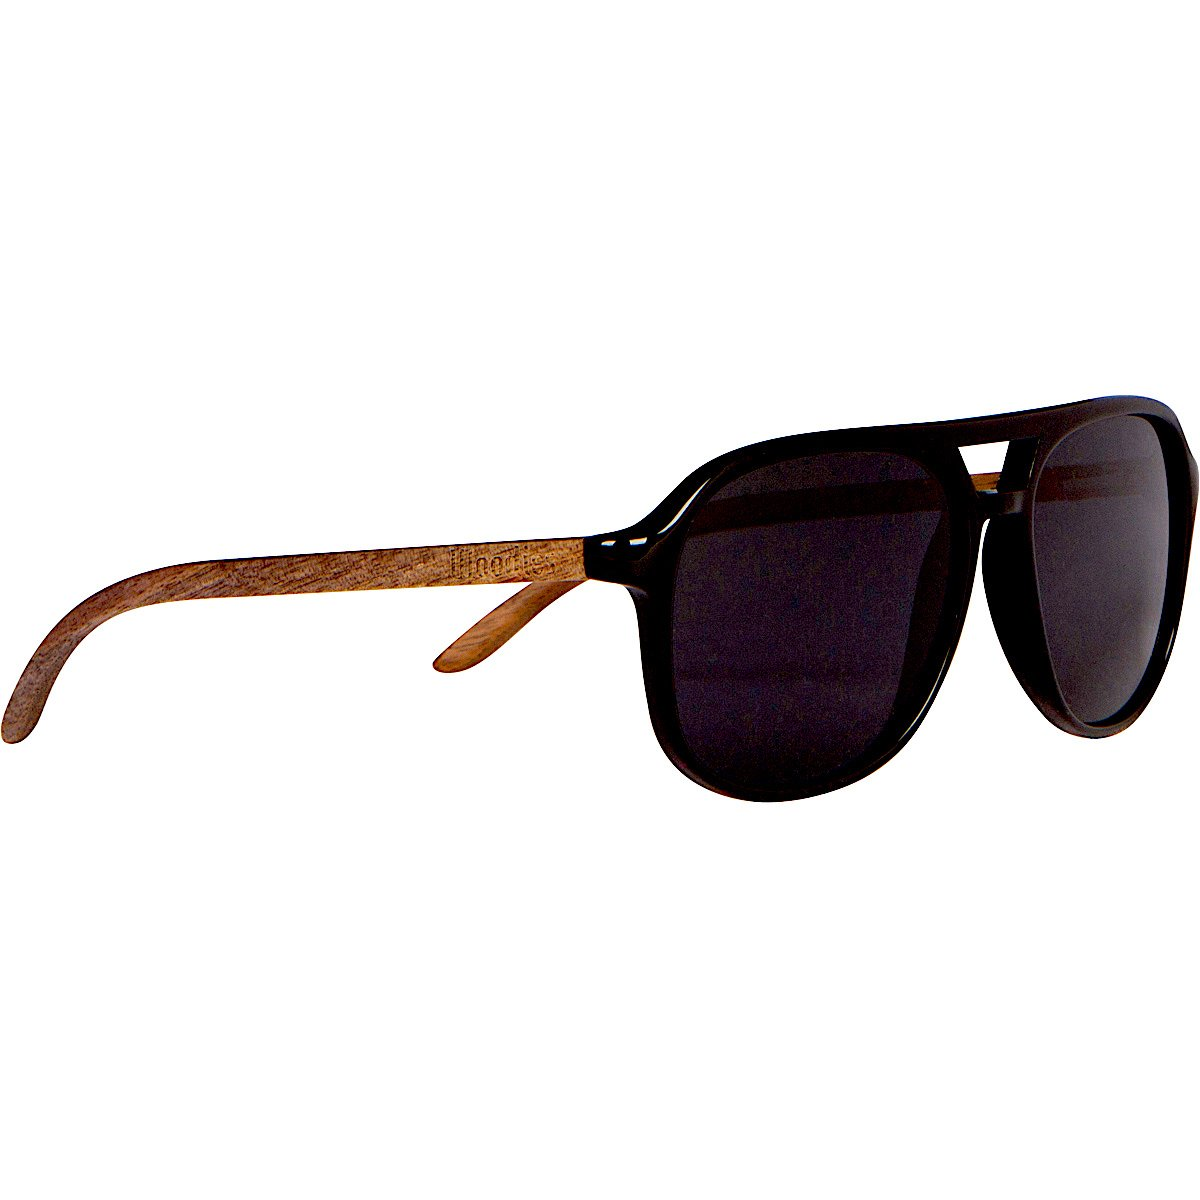 WOODIES Walnut Wood Aviator Wrap Sunglasses with Polarized Lenses for Men or Women